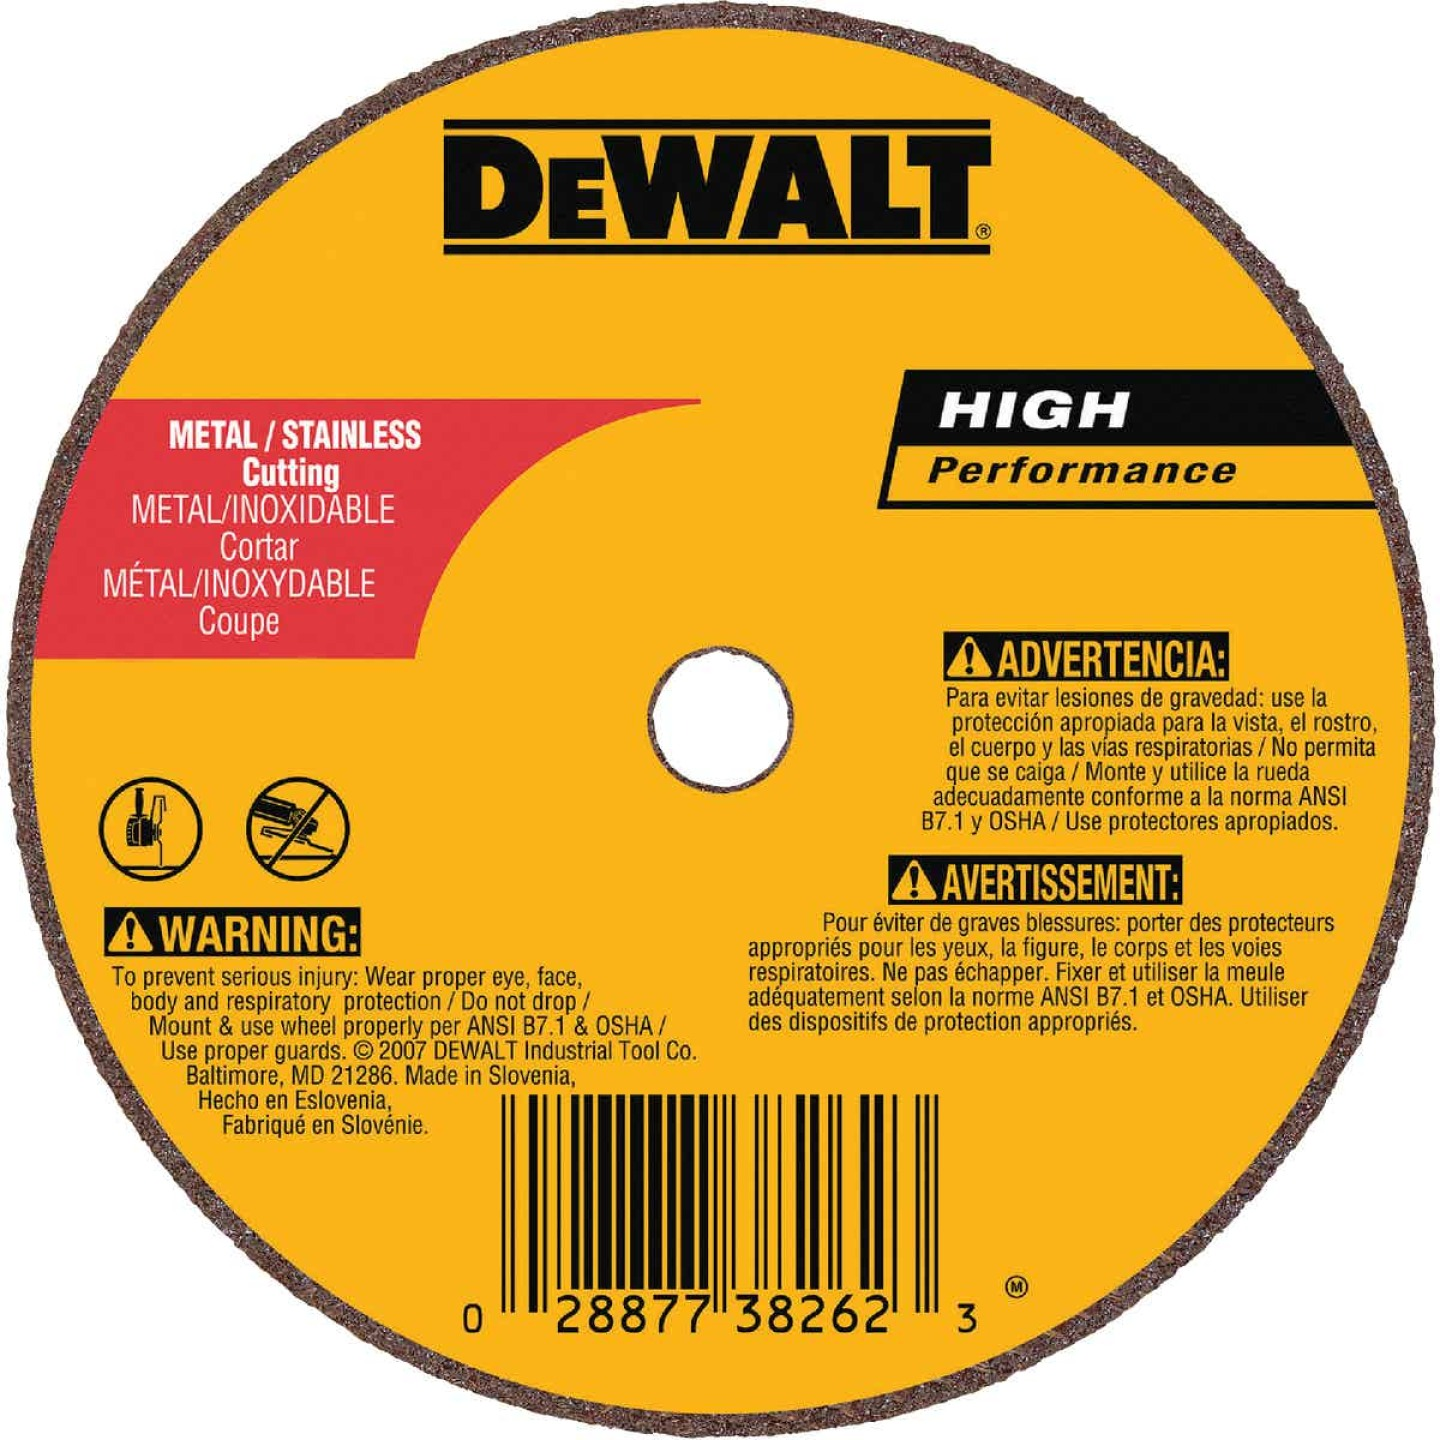 DeWalt HP Type 1 4 In. x 1/16 In. x 5/8 In. Metal/Stainless Cut-Off Wheel Image 1